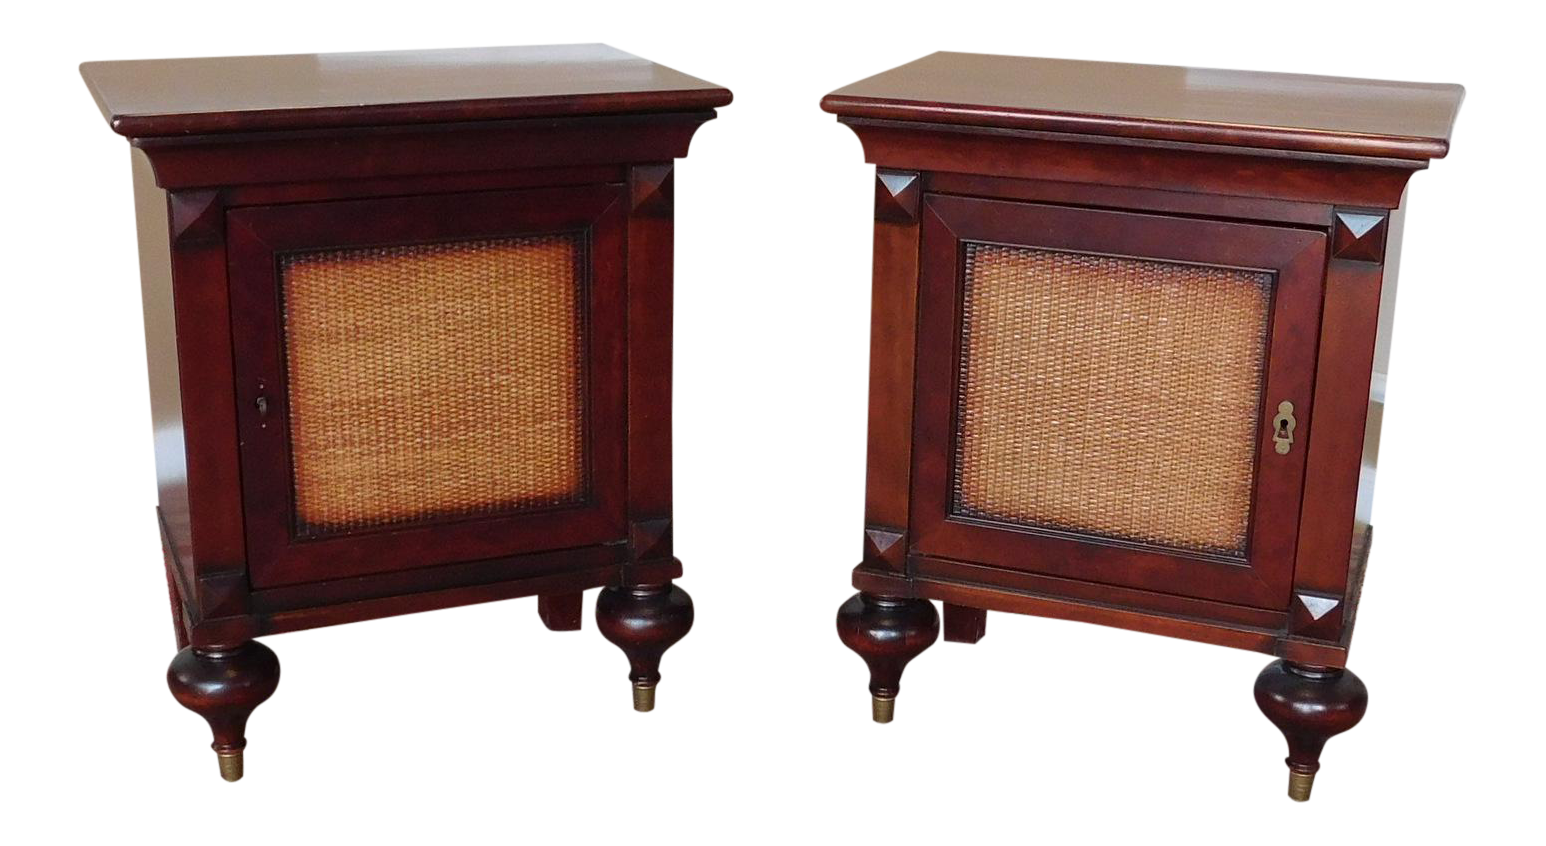 Grasstanding eplap 17621 urban furniture Lighting Asian Influenced Furniture Grange Furniture French Indochine Asian Influenced Nightstand Tables Pair Igexao Asian Influenced Furniture I Batteryuscom